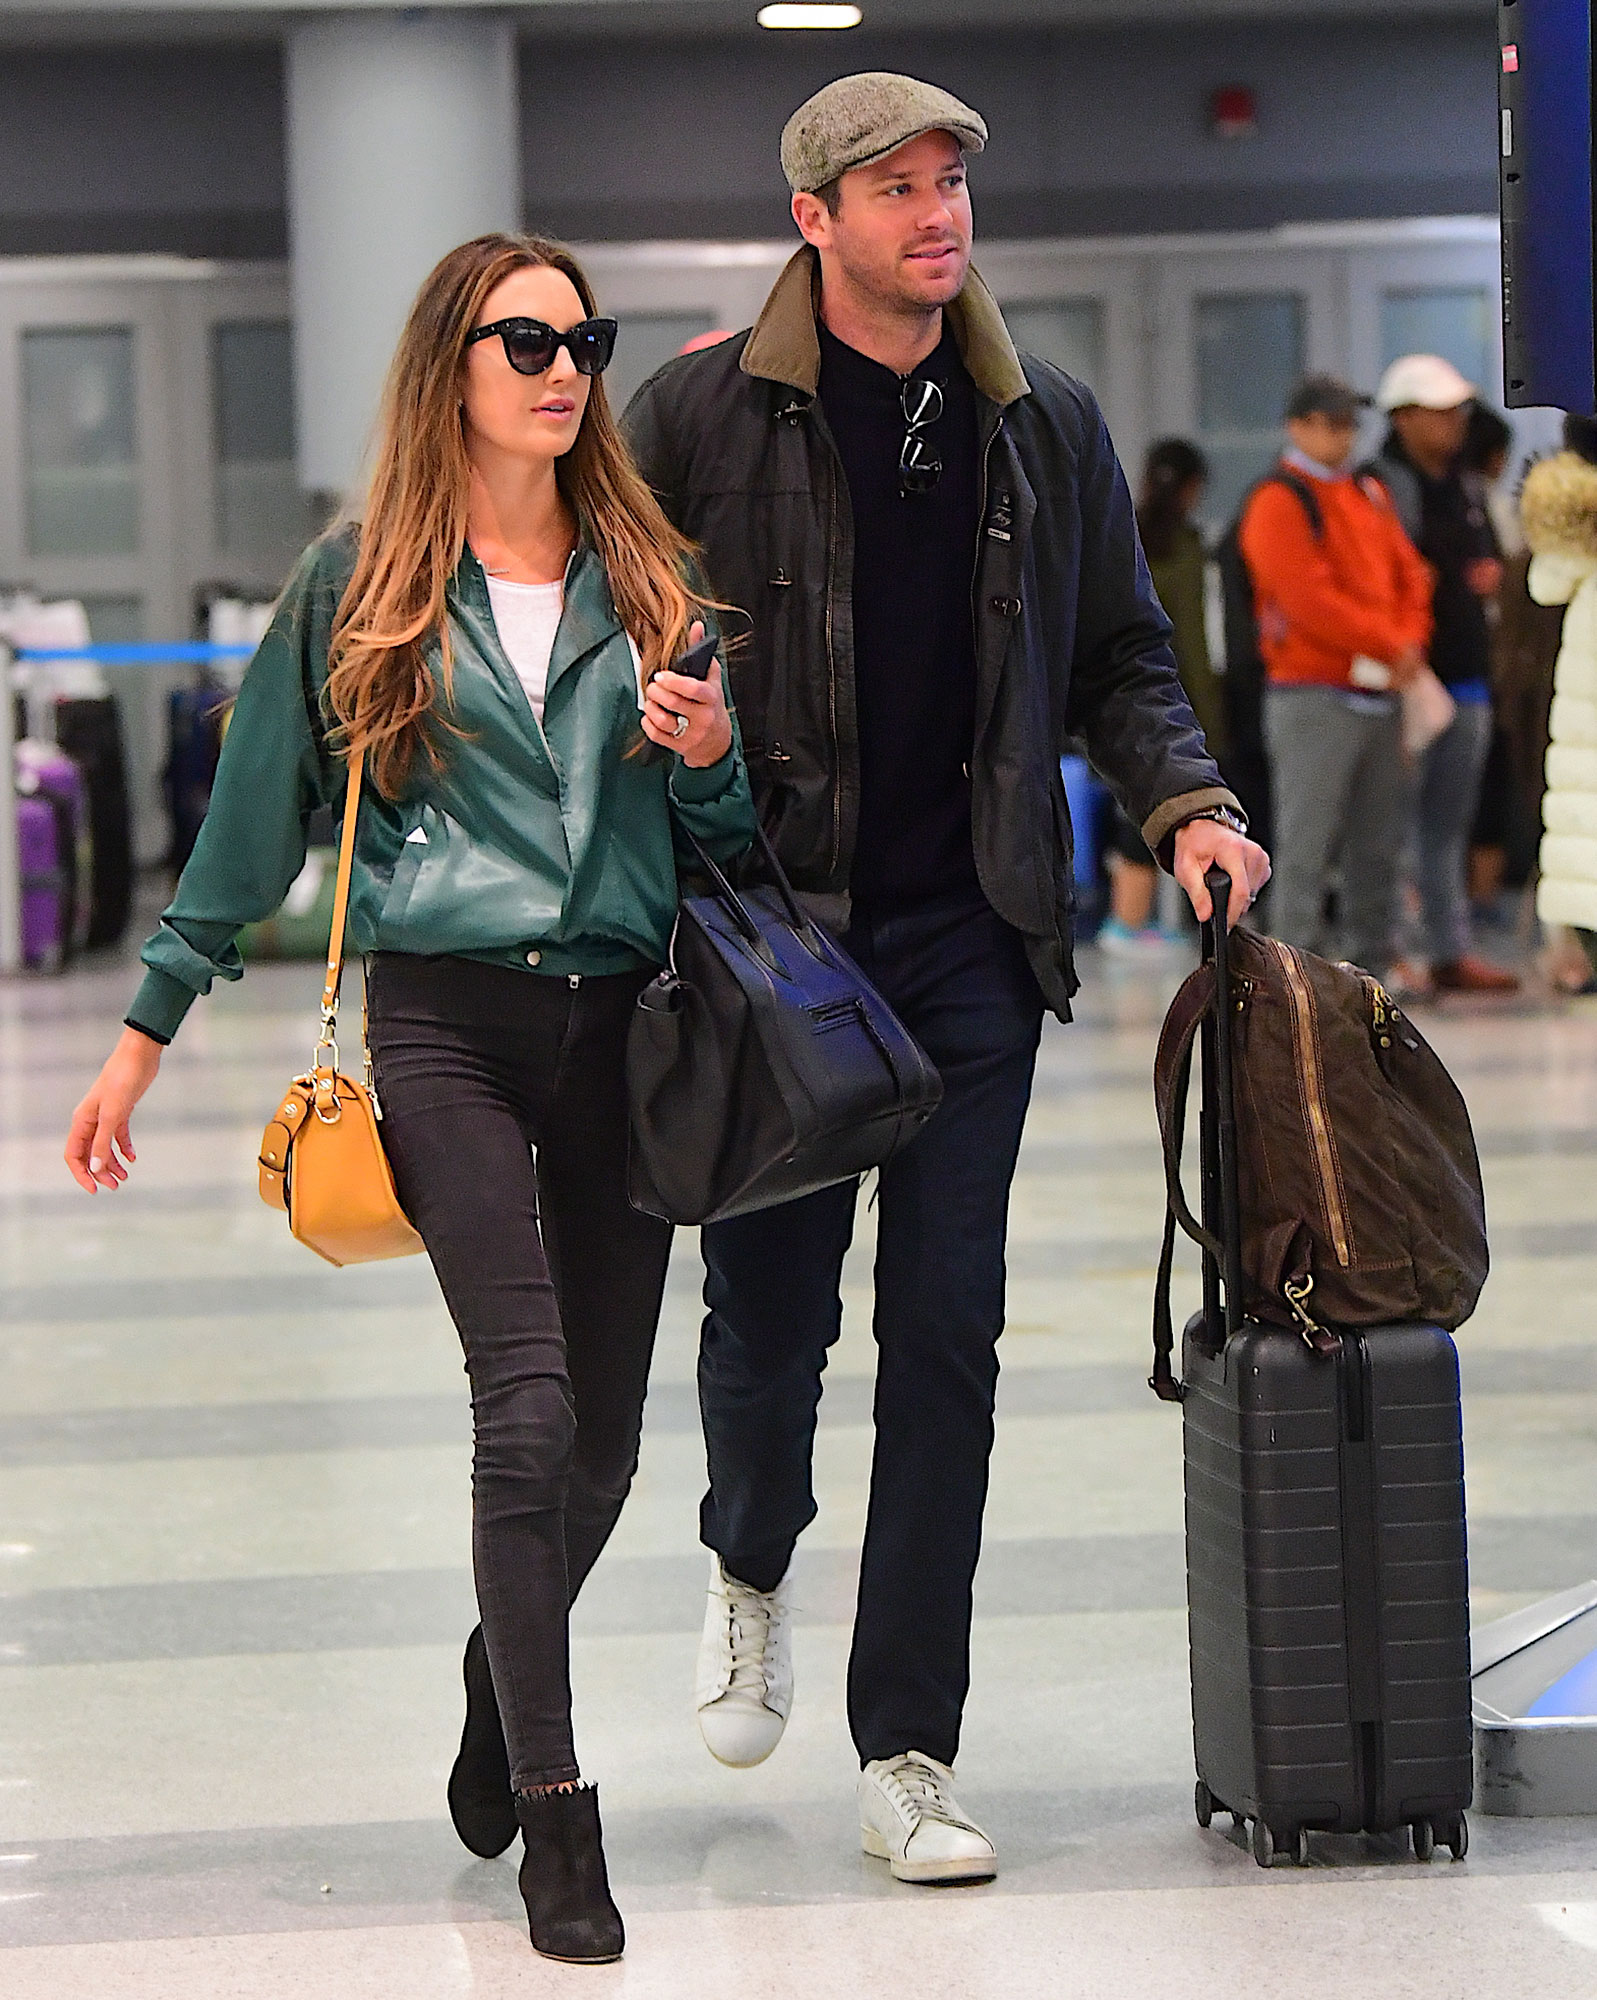 Armie Hammer and Wife Elizabeth Chambers Jet into NYC with Timothy Chalamet